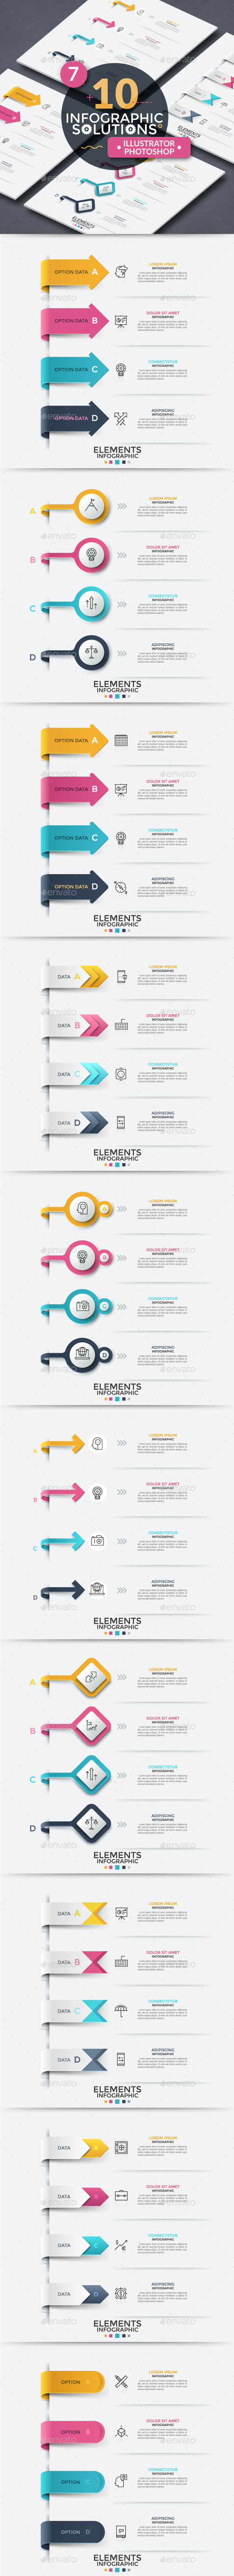 Infographic Solutions. Part 7 - Infographics